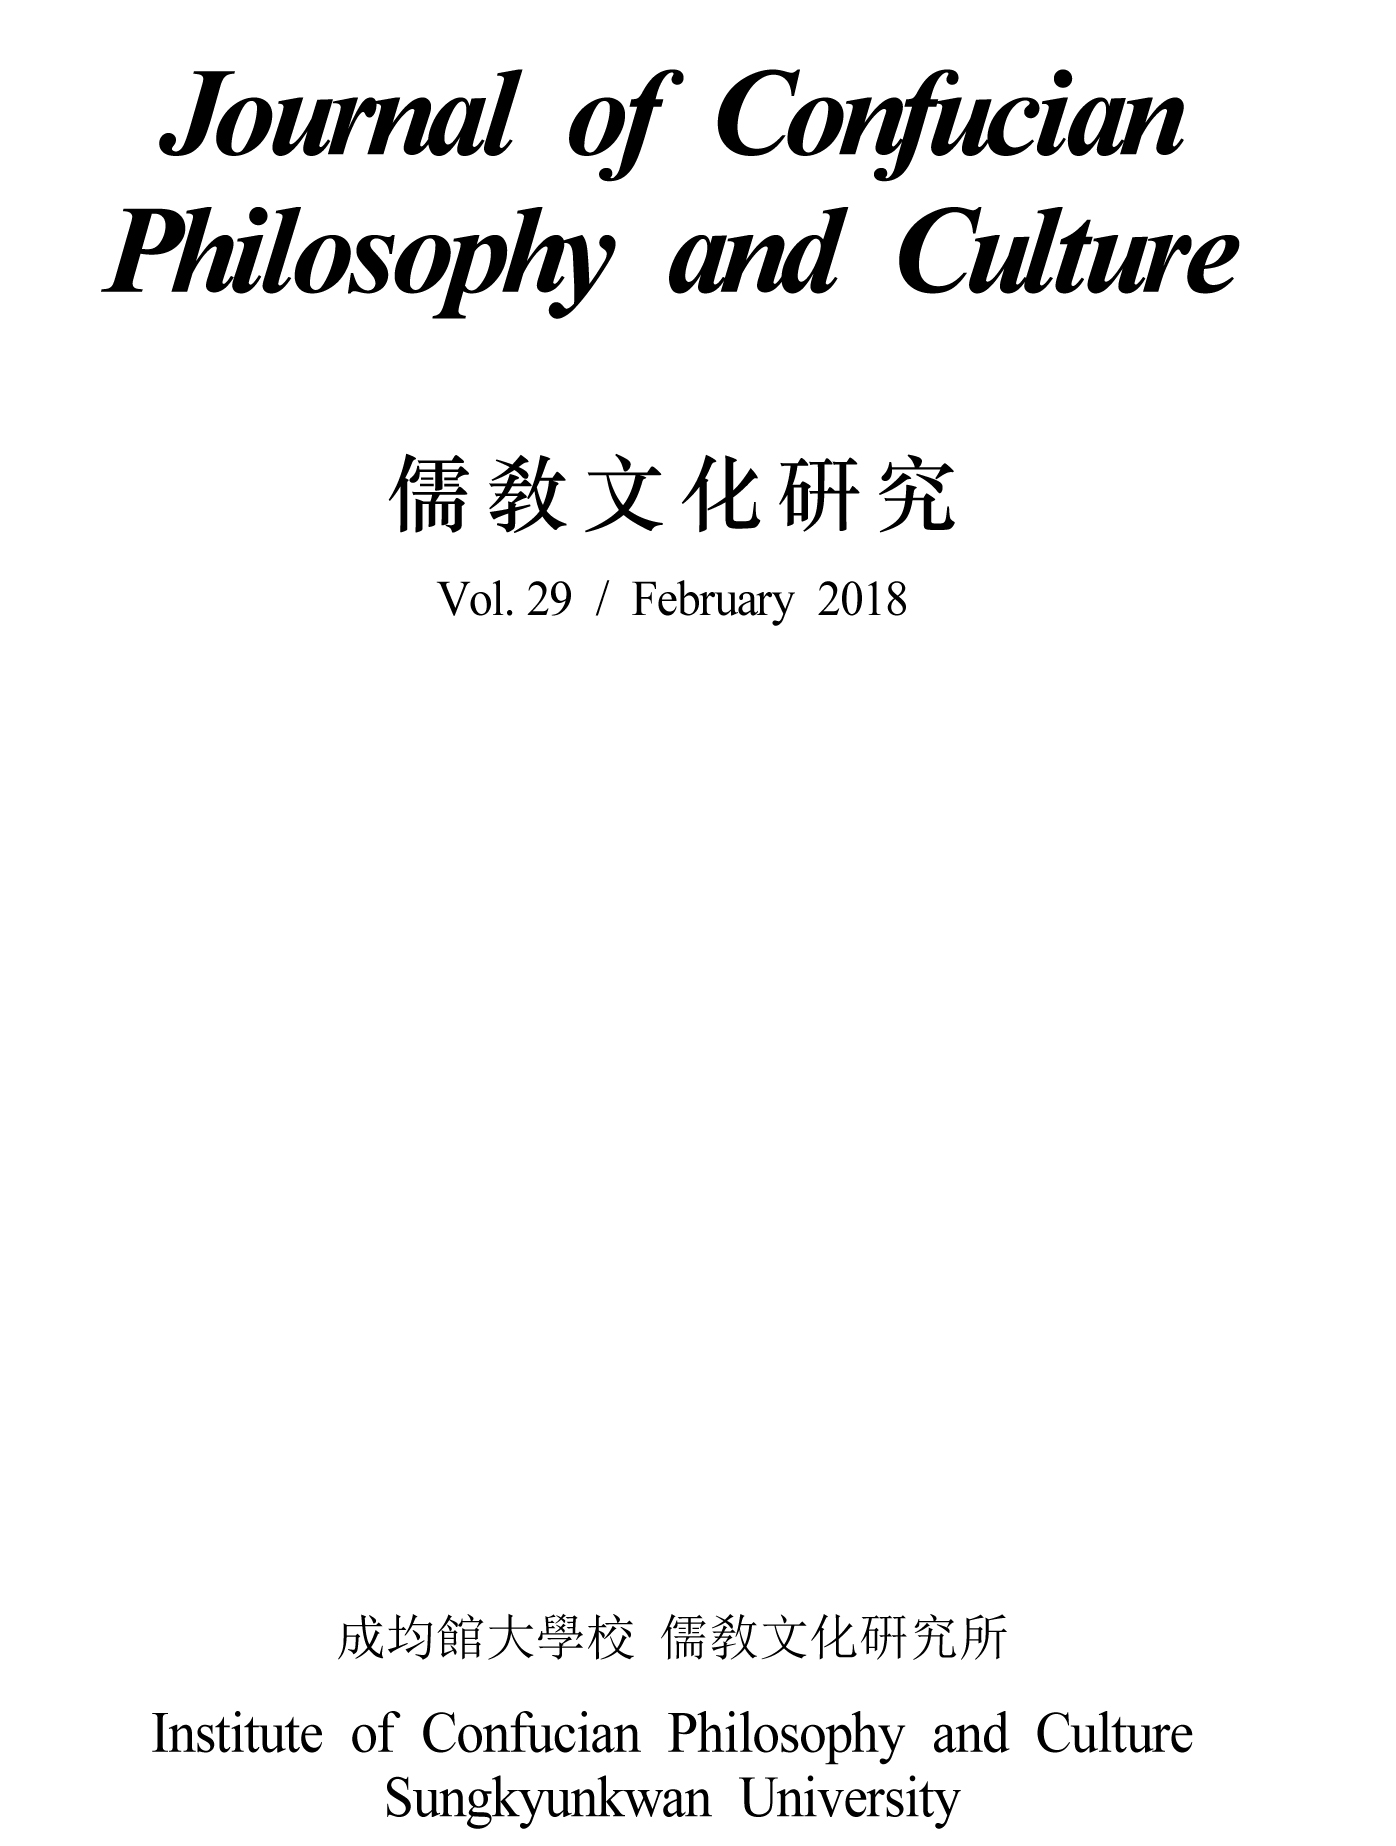 Journal of Confucian Philosophy and Culture